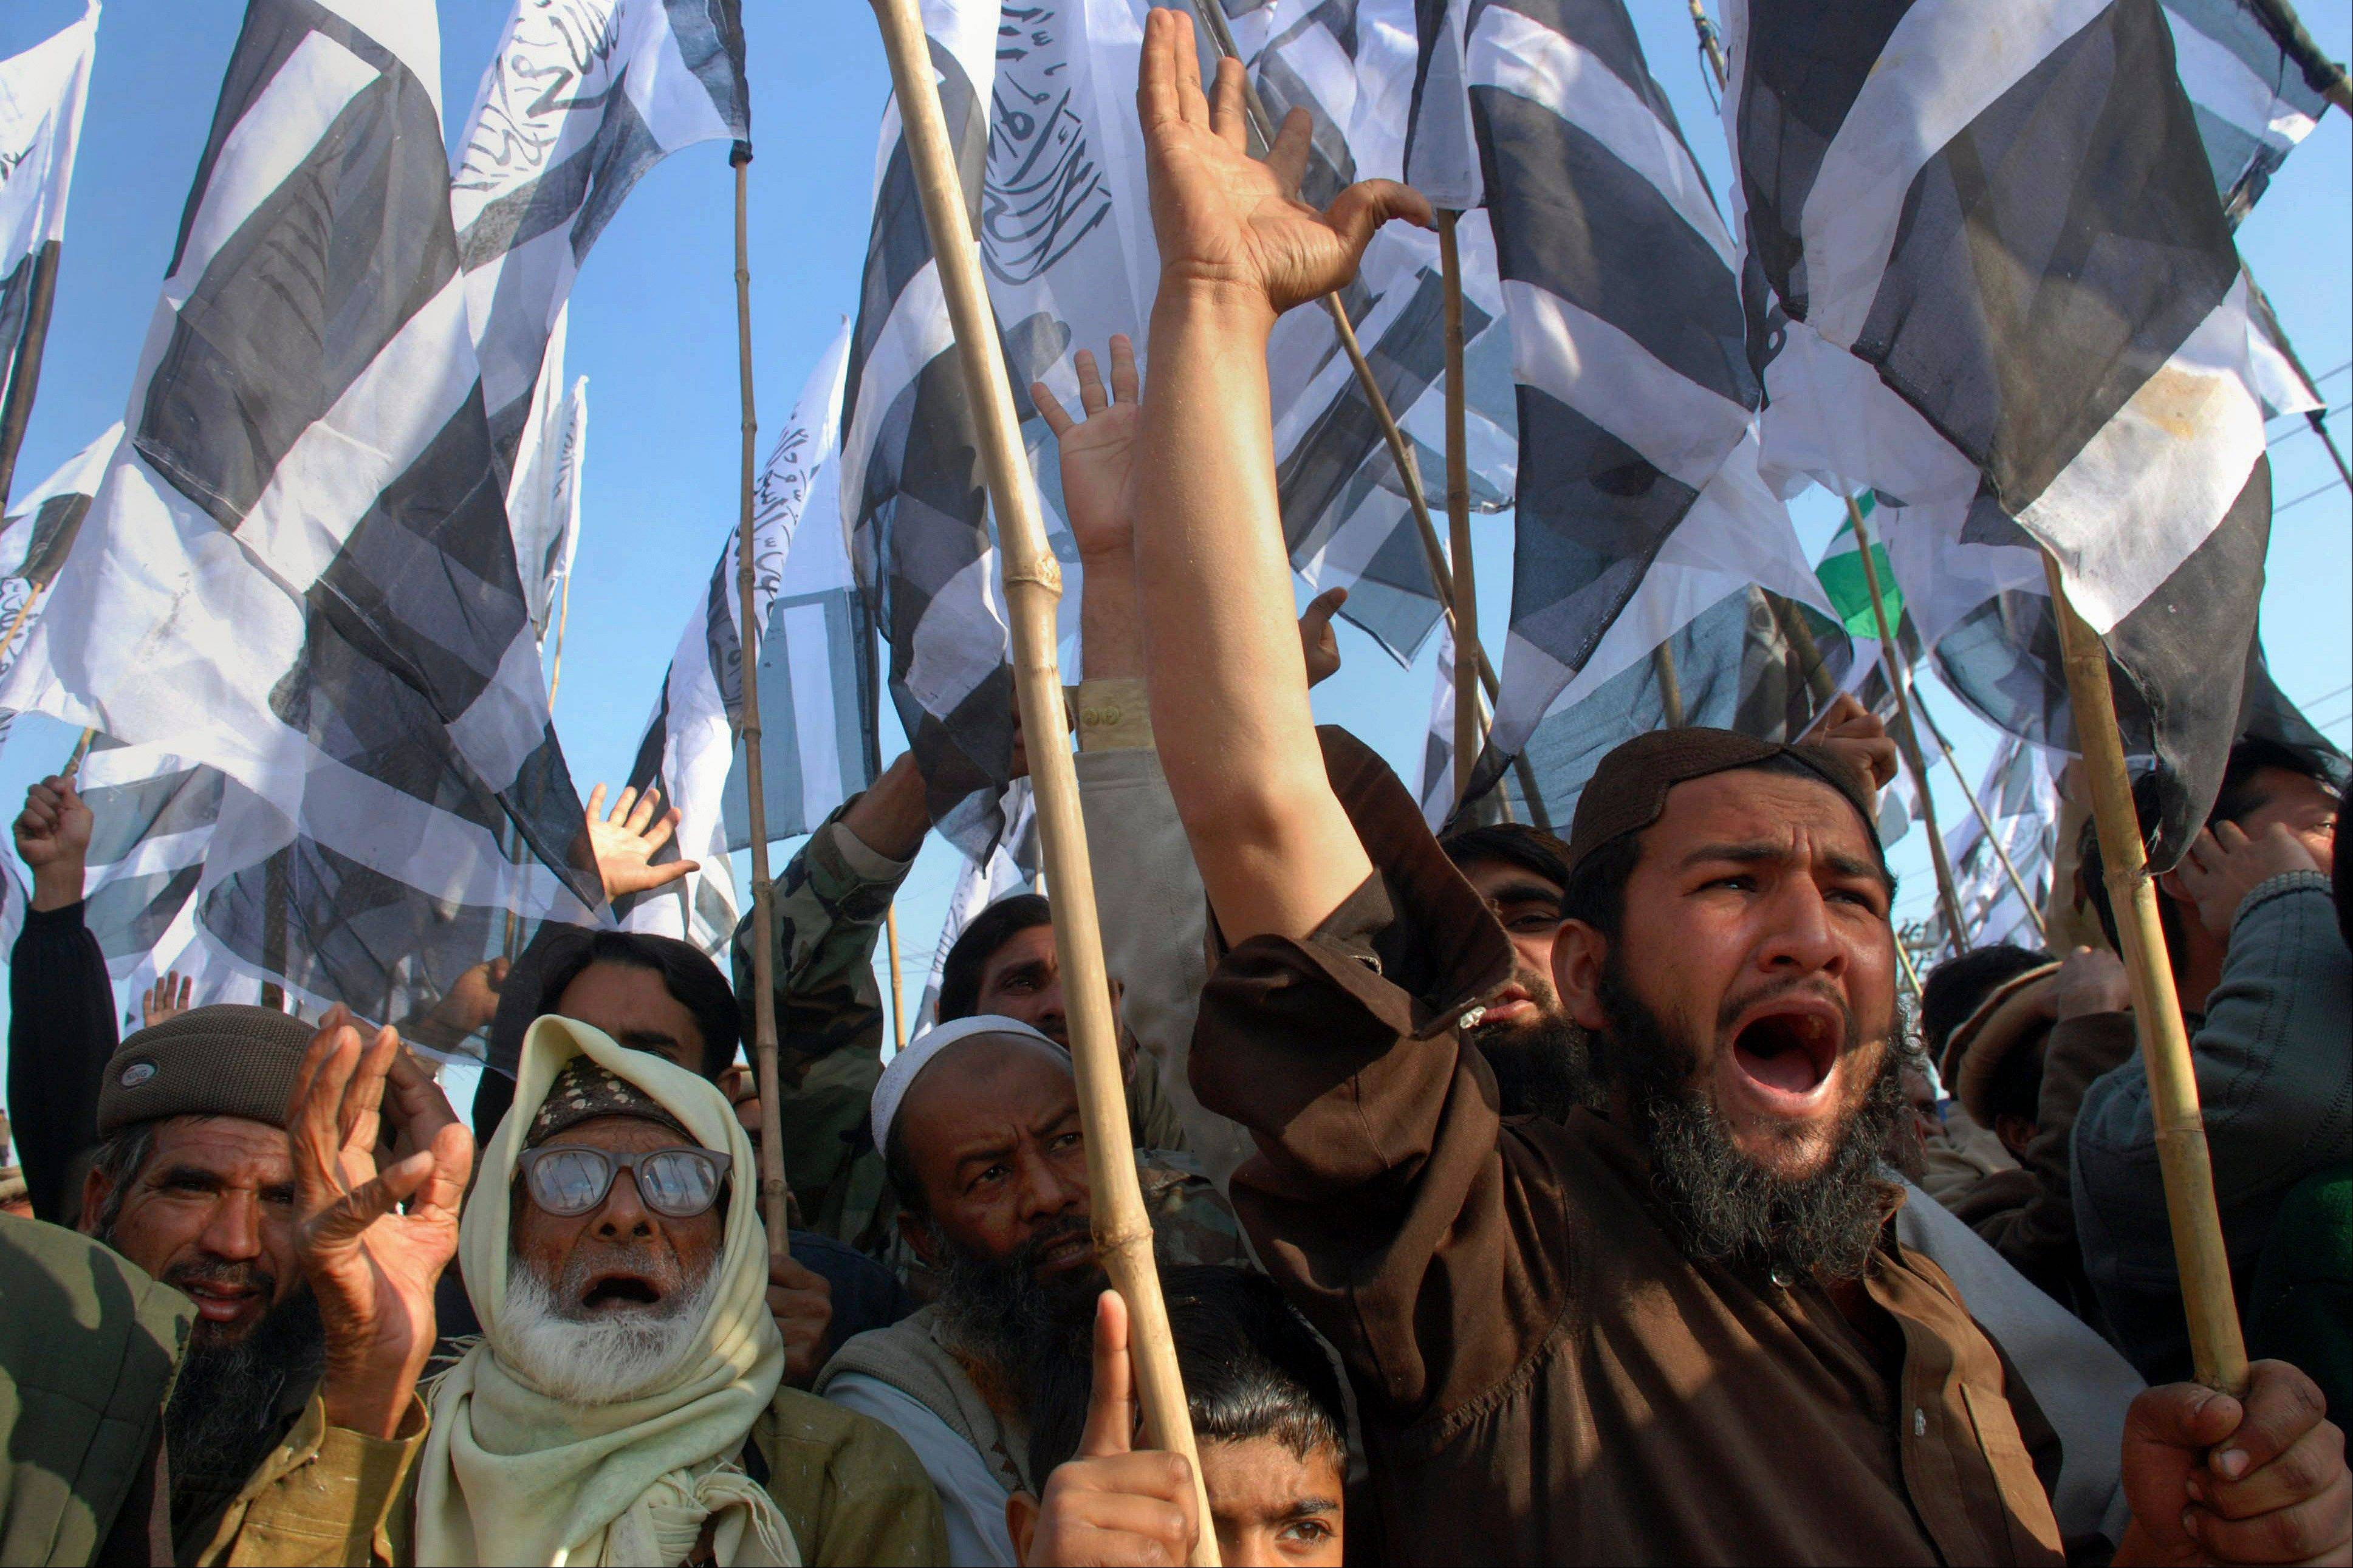 Supporters of the Pakistani religious group Jamat-ud-Dawa chant slogans during a demonstration Sunday to condemn the hanging of Mohammed Afzal Guru in Rawalpindi, Pakistan.